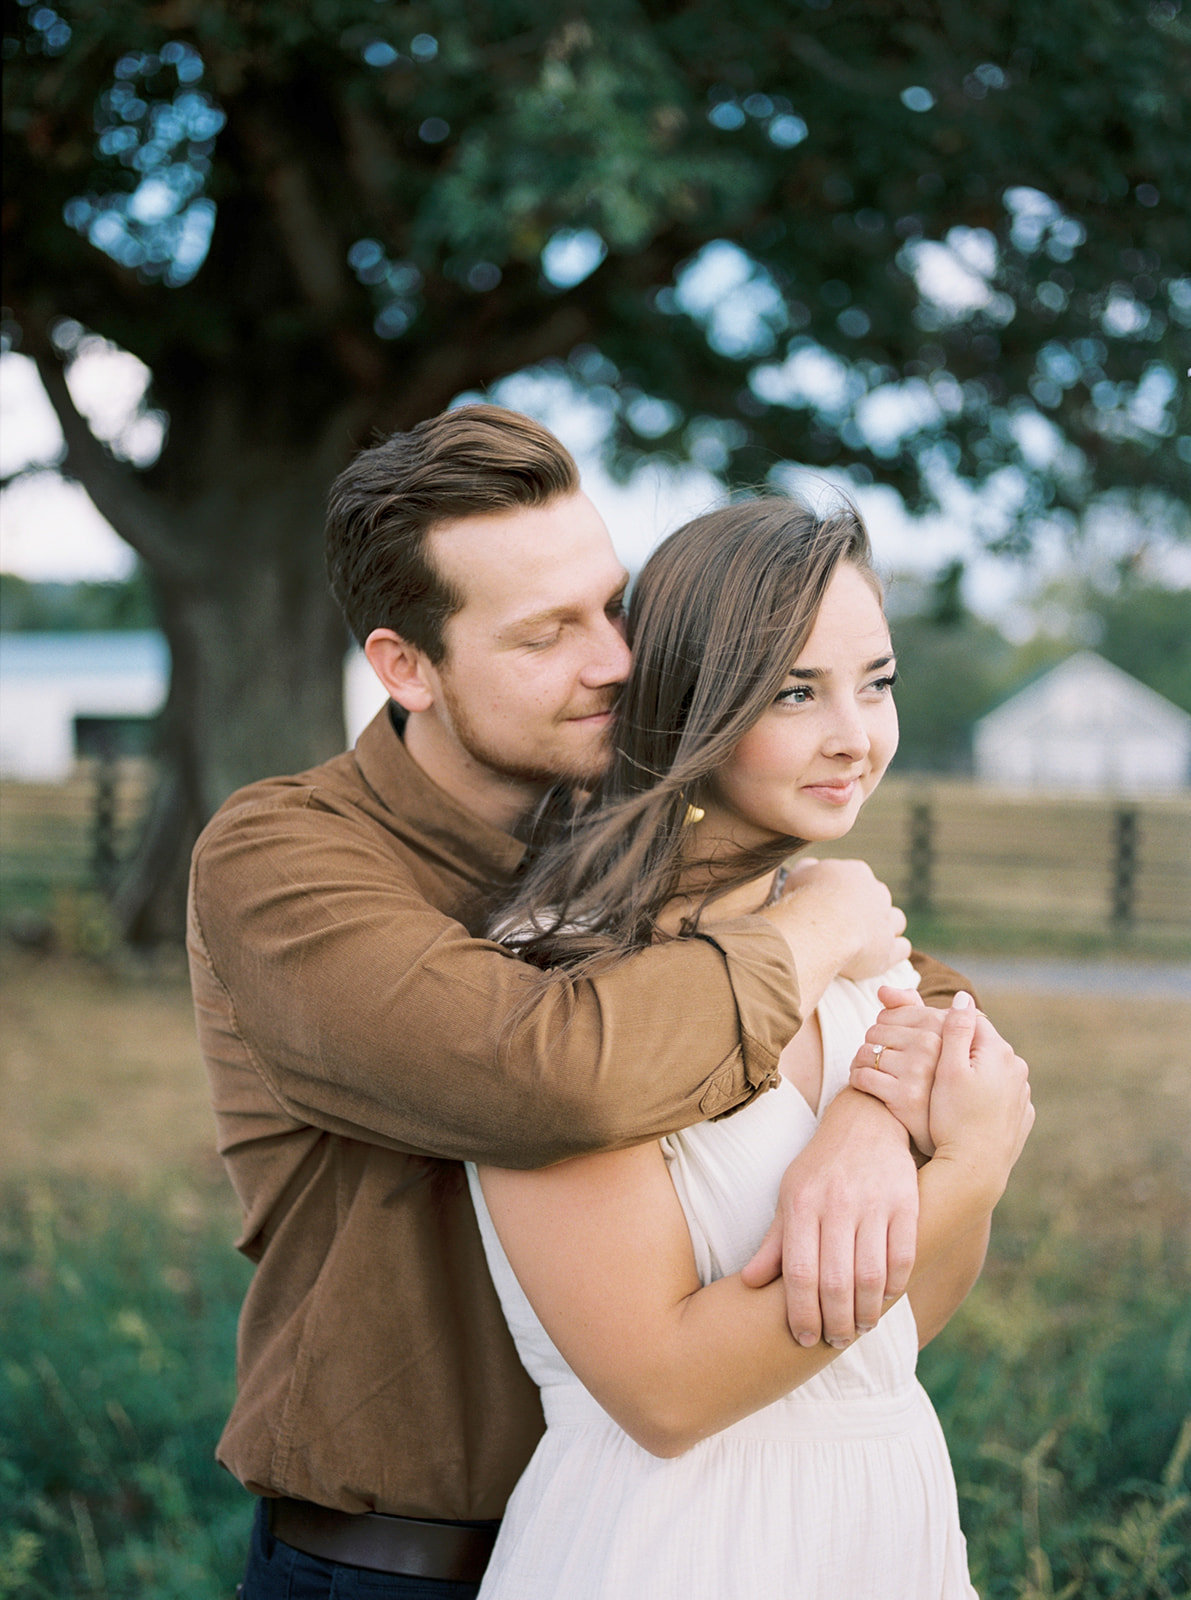 michela-brooke-photo-maryclaire-caleb-farm-engagement-51_websize